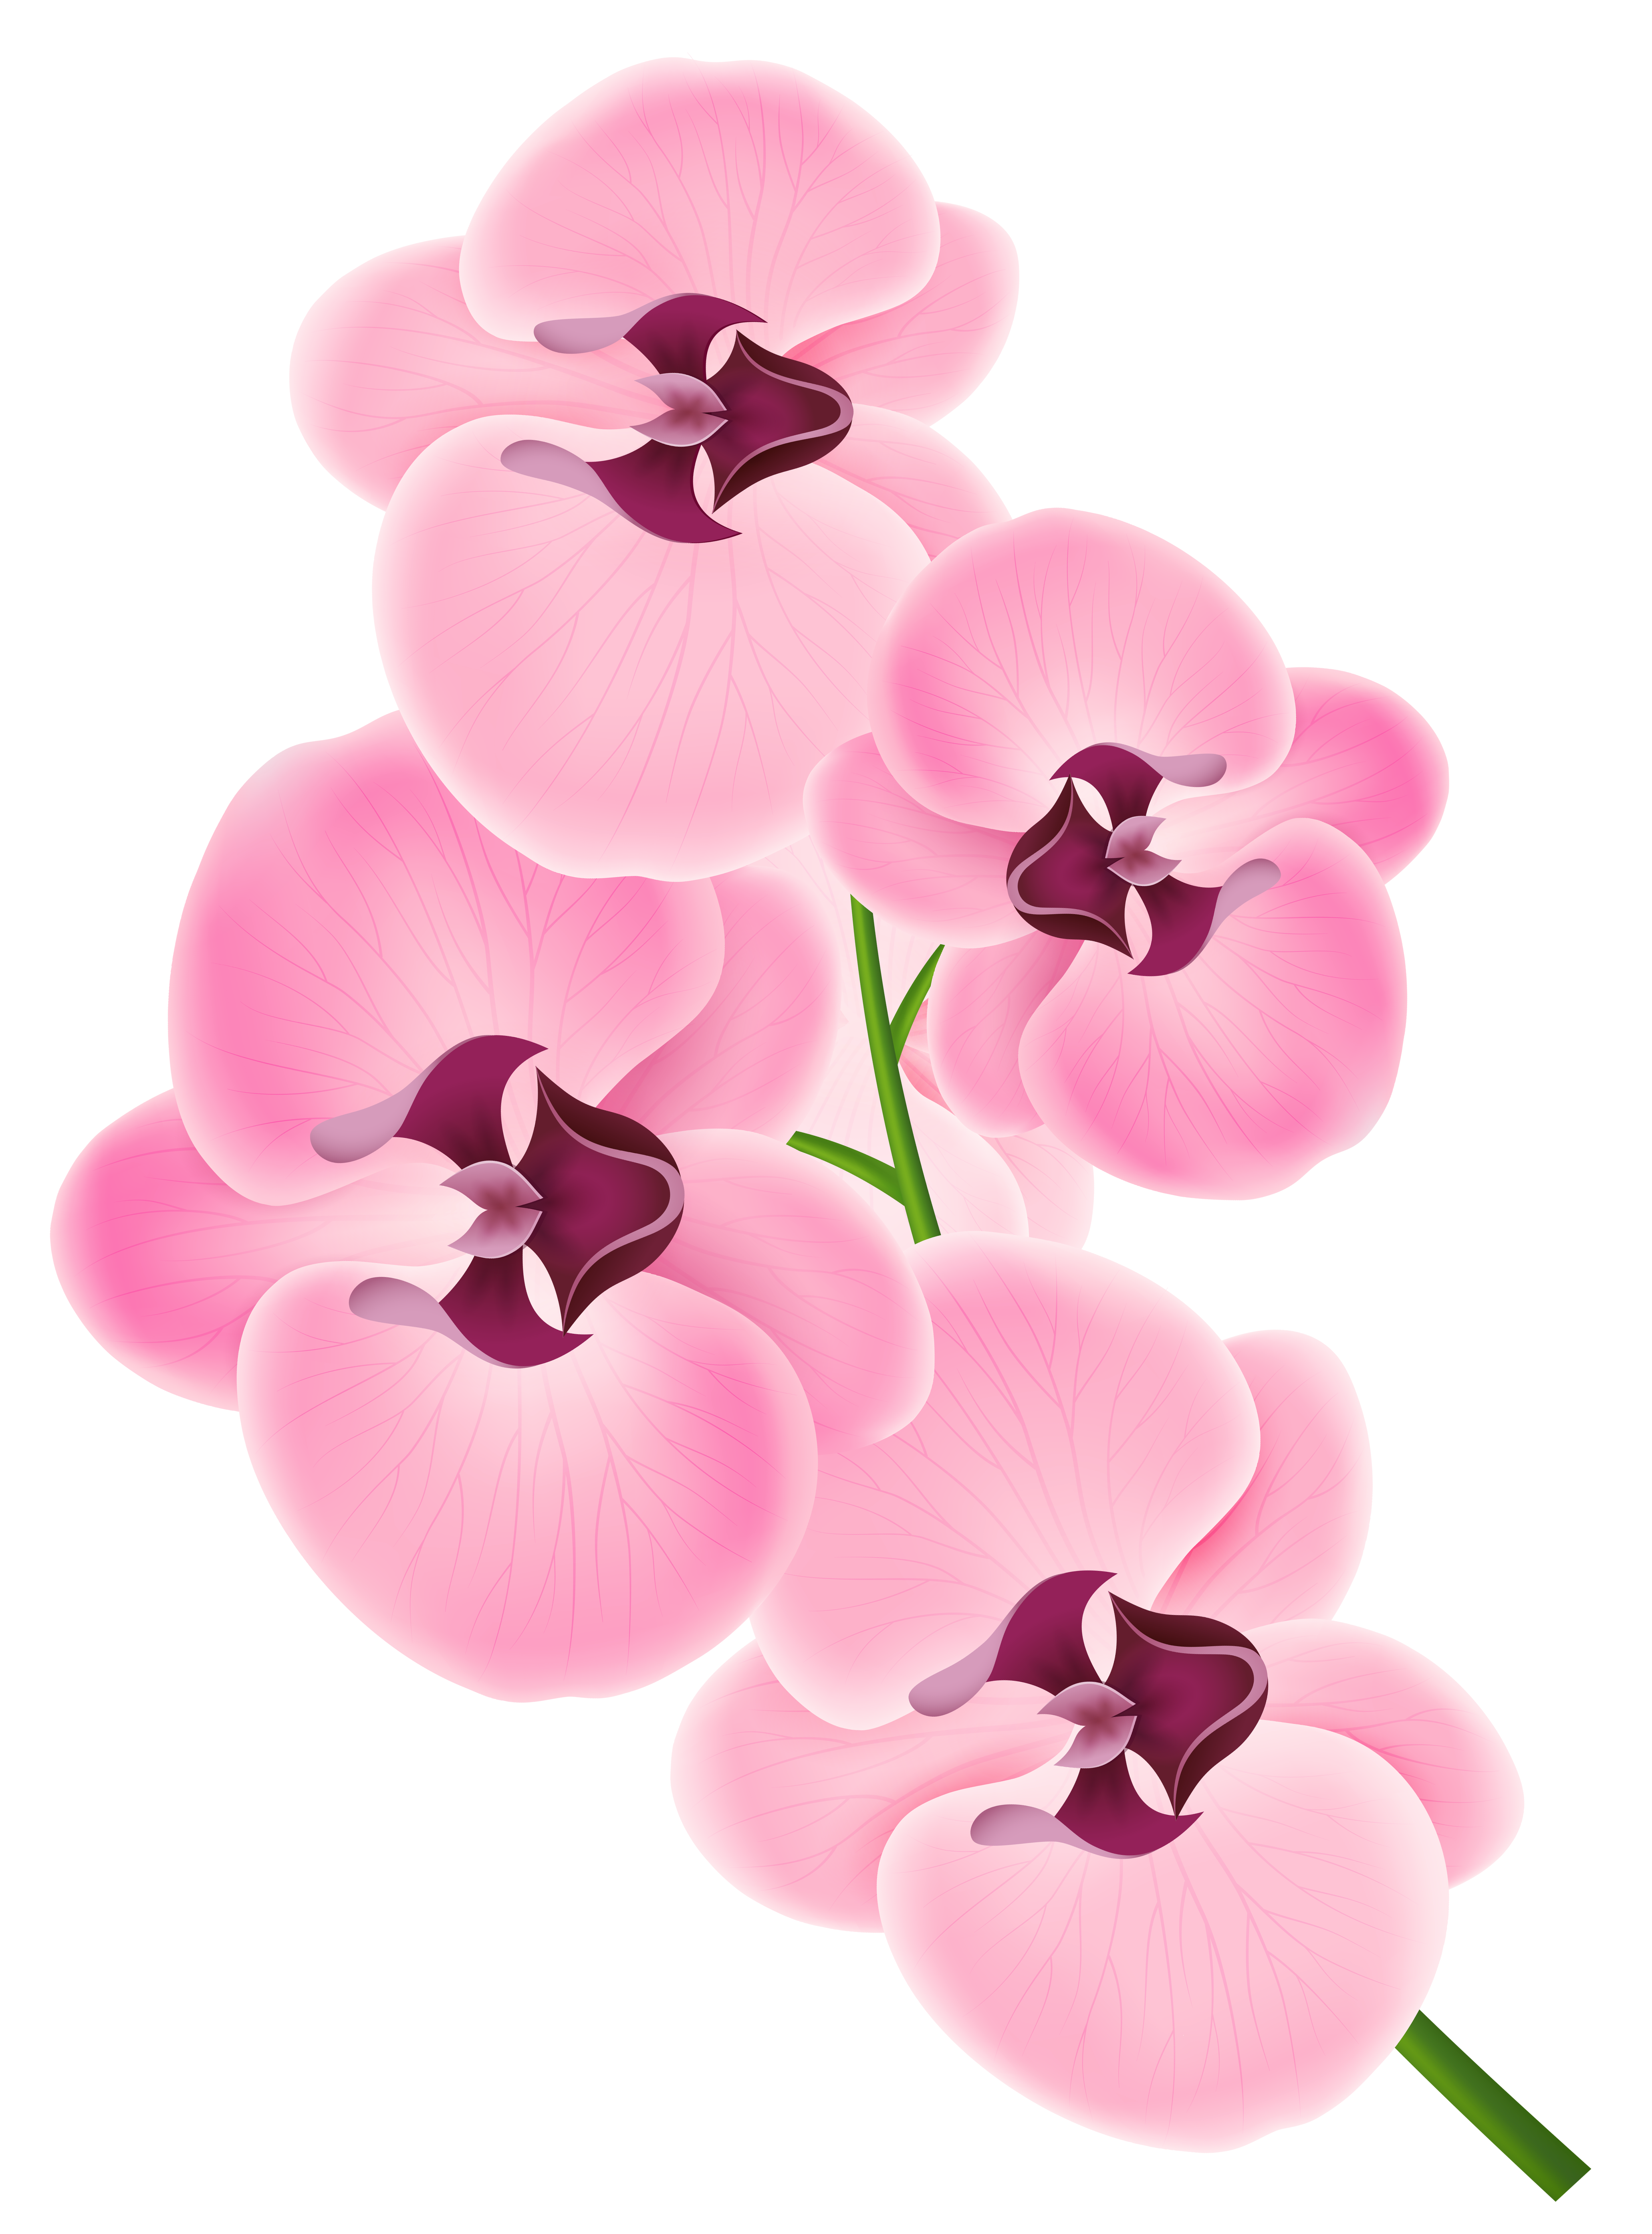 Orchad clipart graphic freeuse stock Free Orchid Cliparts, Download Free Clip Art, Free Clip Art on ... graphic freeuse stock